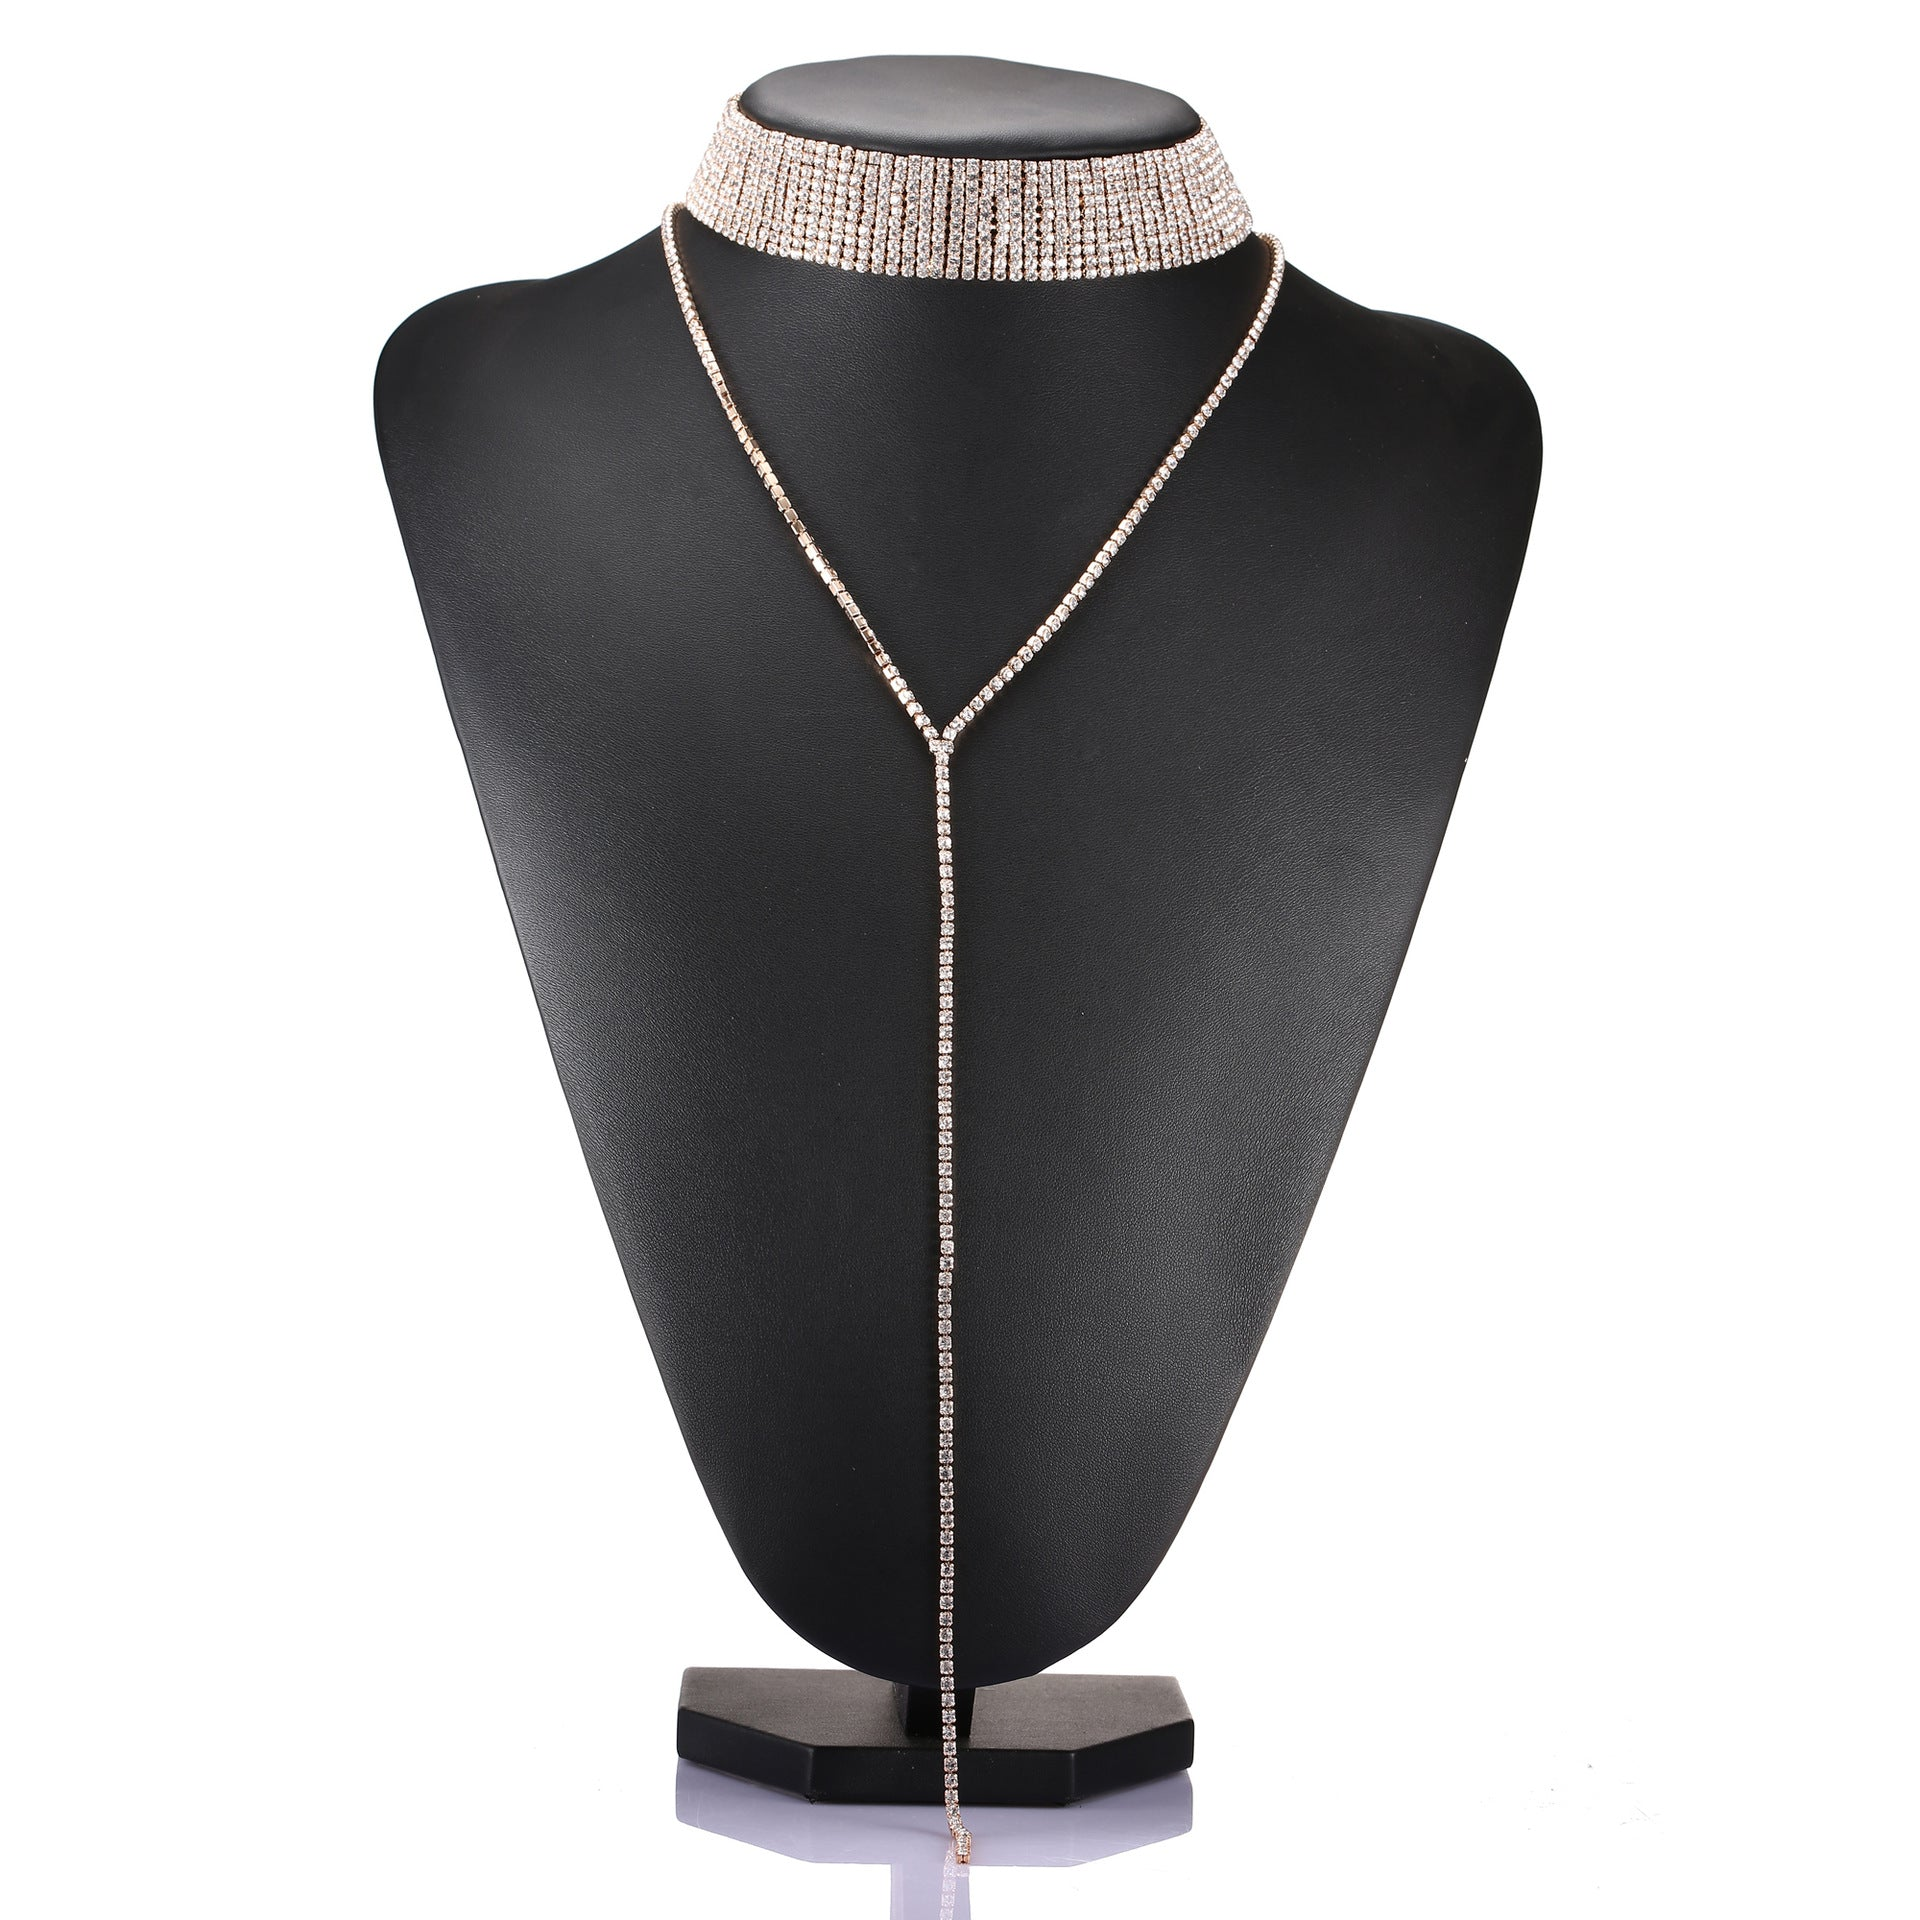 Diamanté Choker and Long Evening Wear Fashion Necklace in Silver, Gold or Red - BELLADONNA